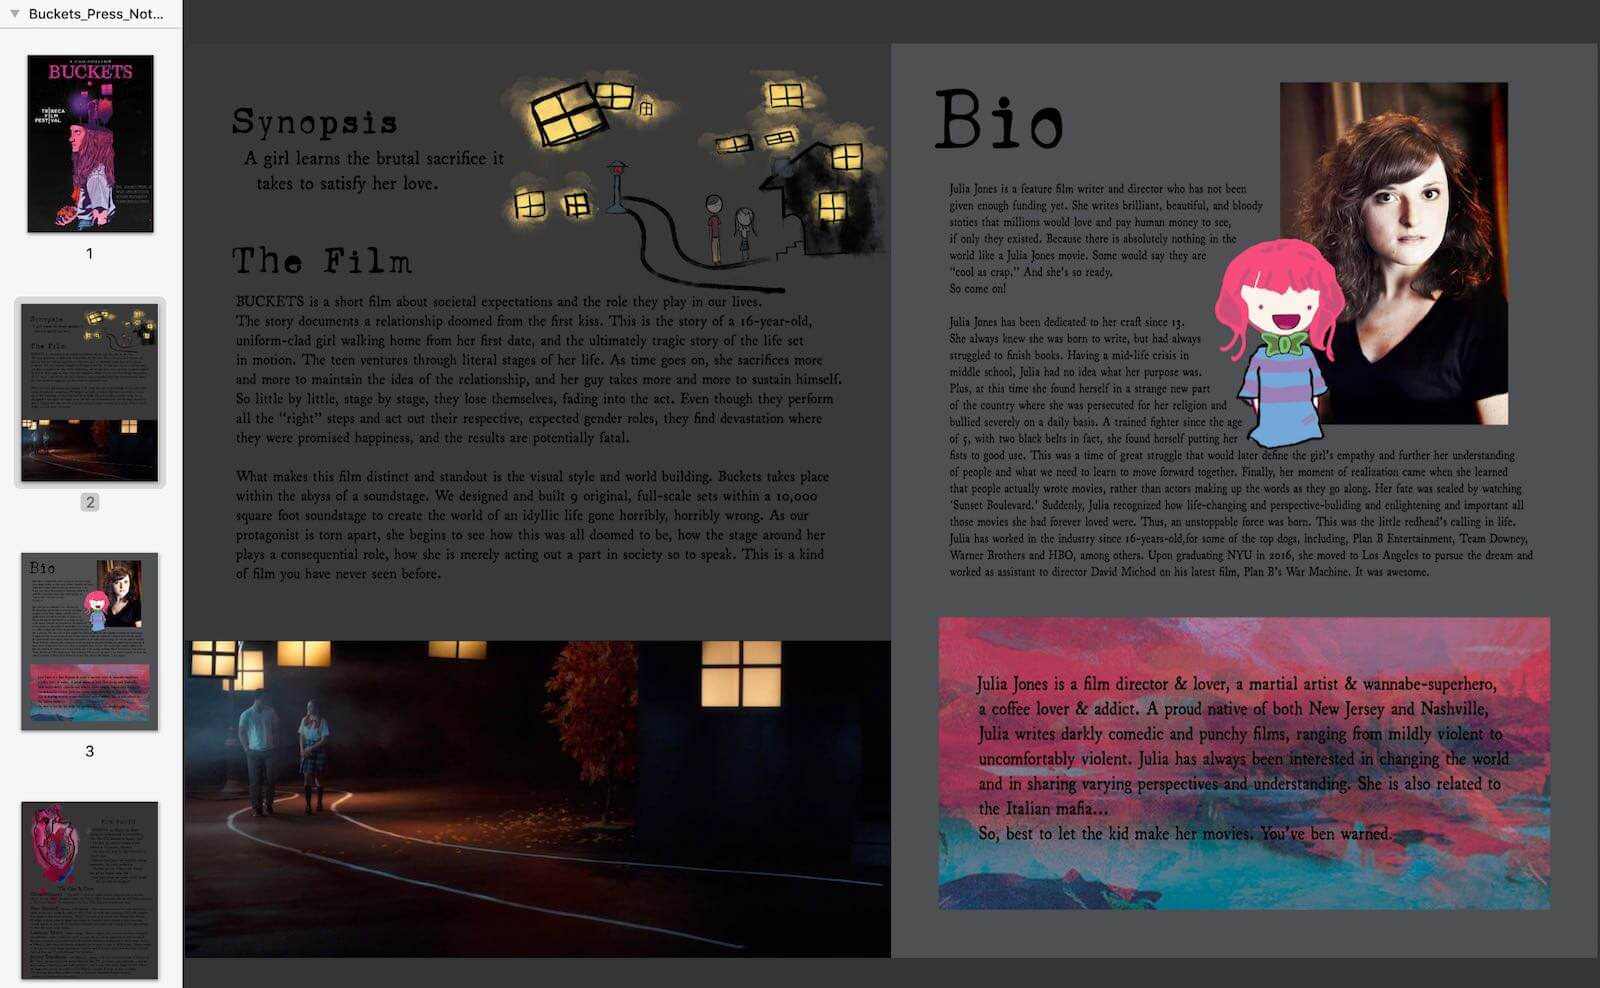 electronic press kit template free - the ultimate guide to creating an epk with free template